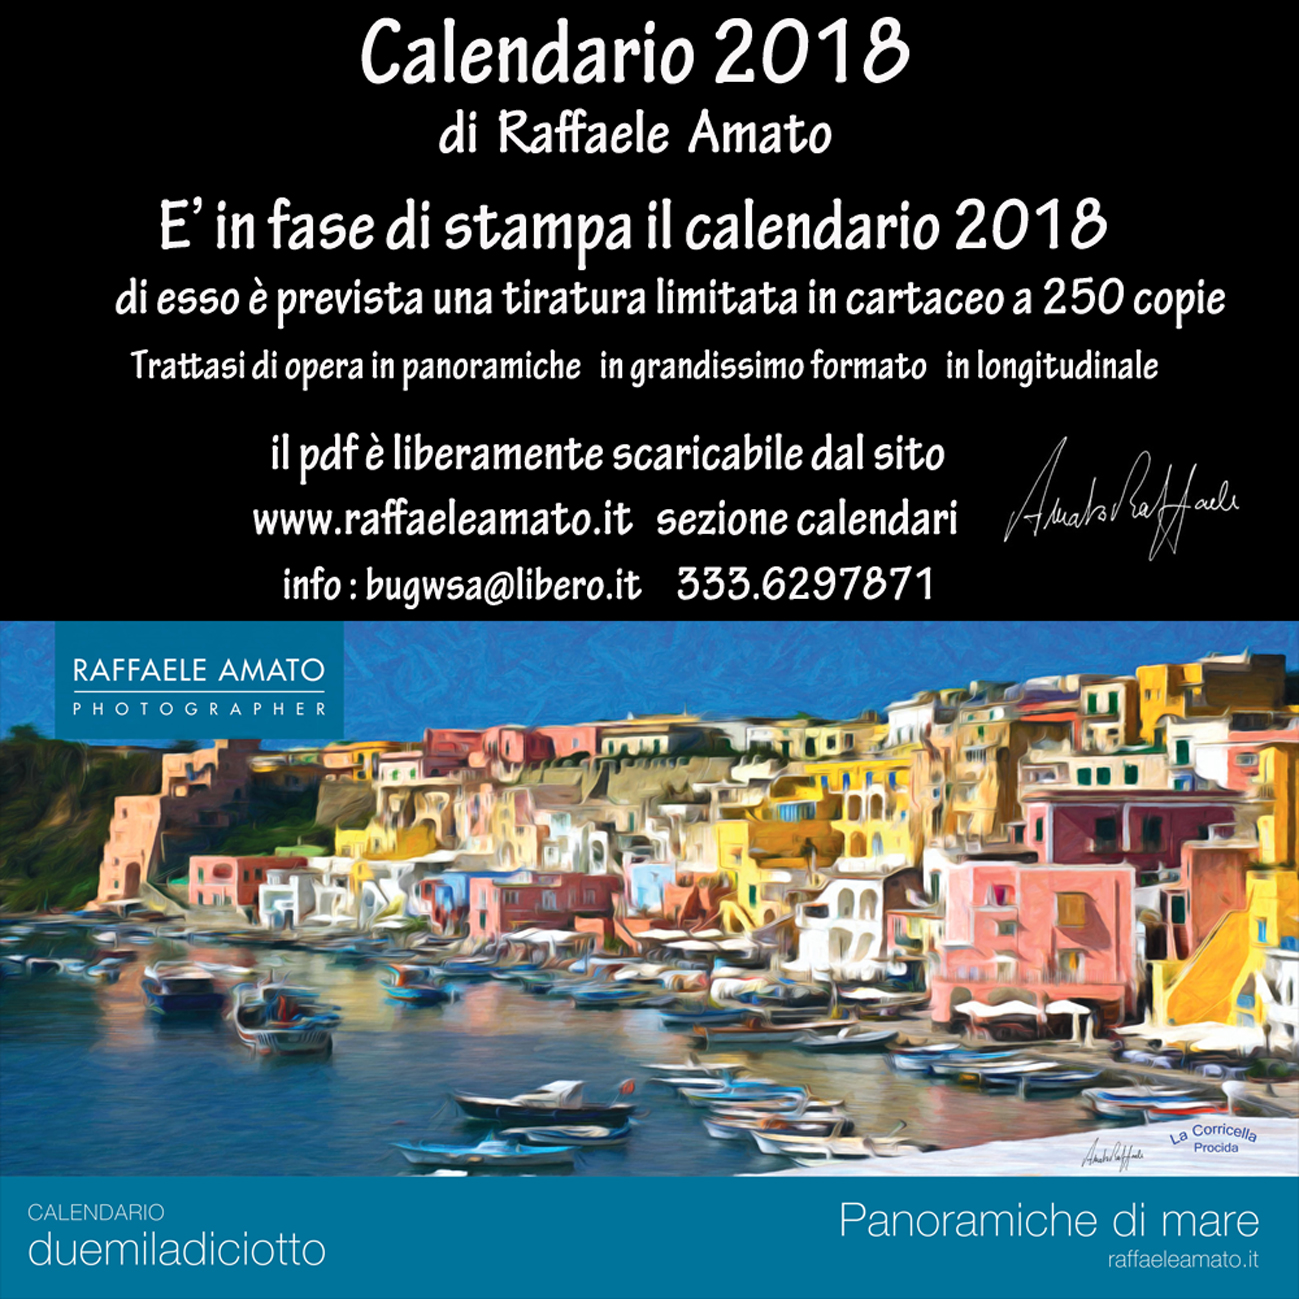 2018-calendar-calendario-Amato-Raffaele-picture-fishing_village-sea-summer-holiday-landscape